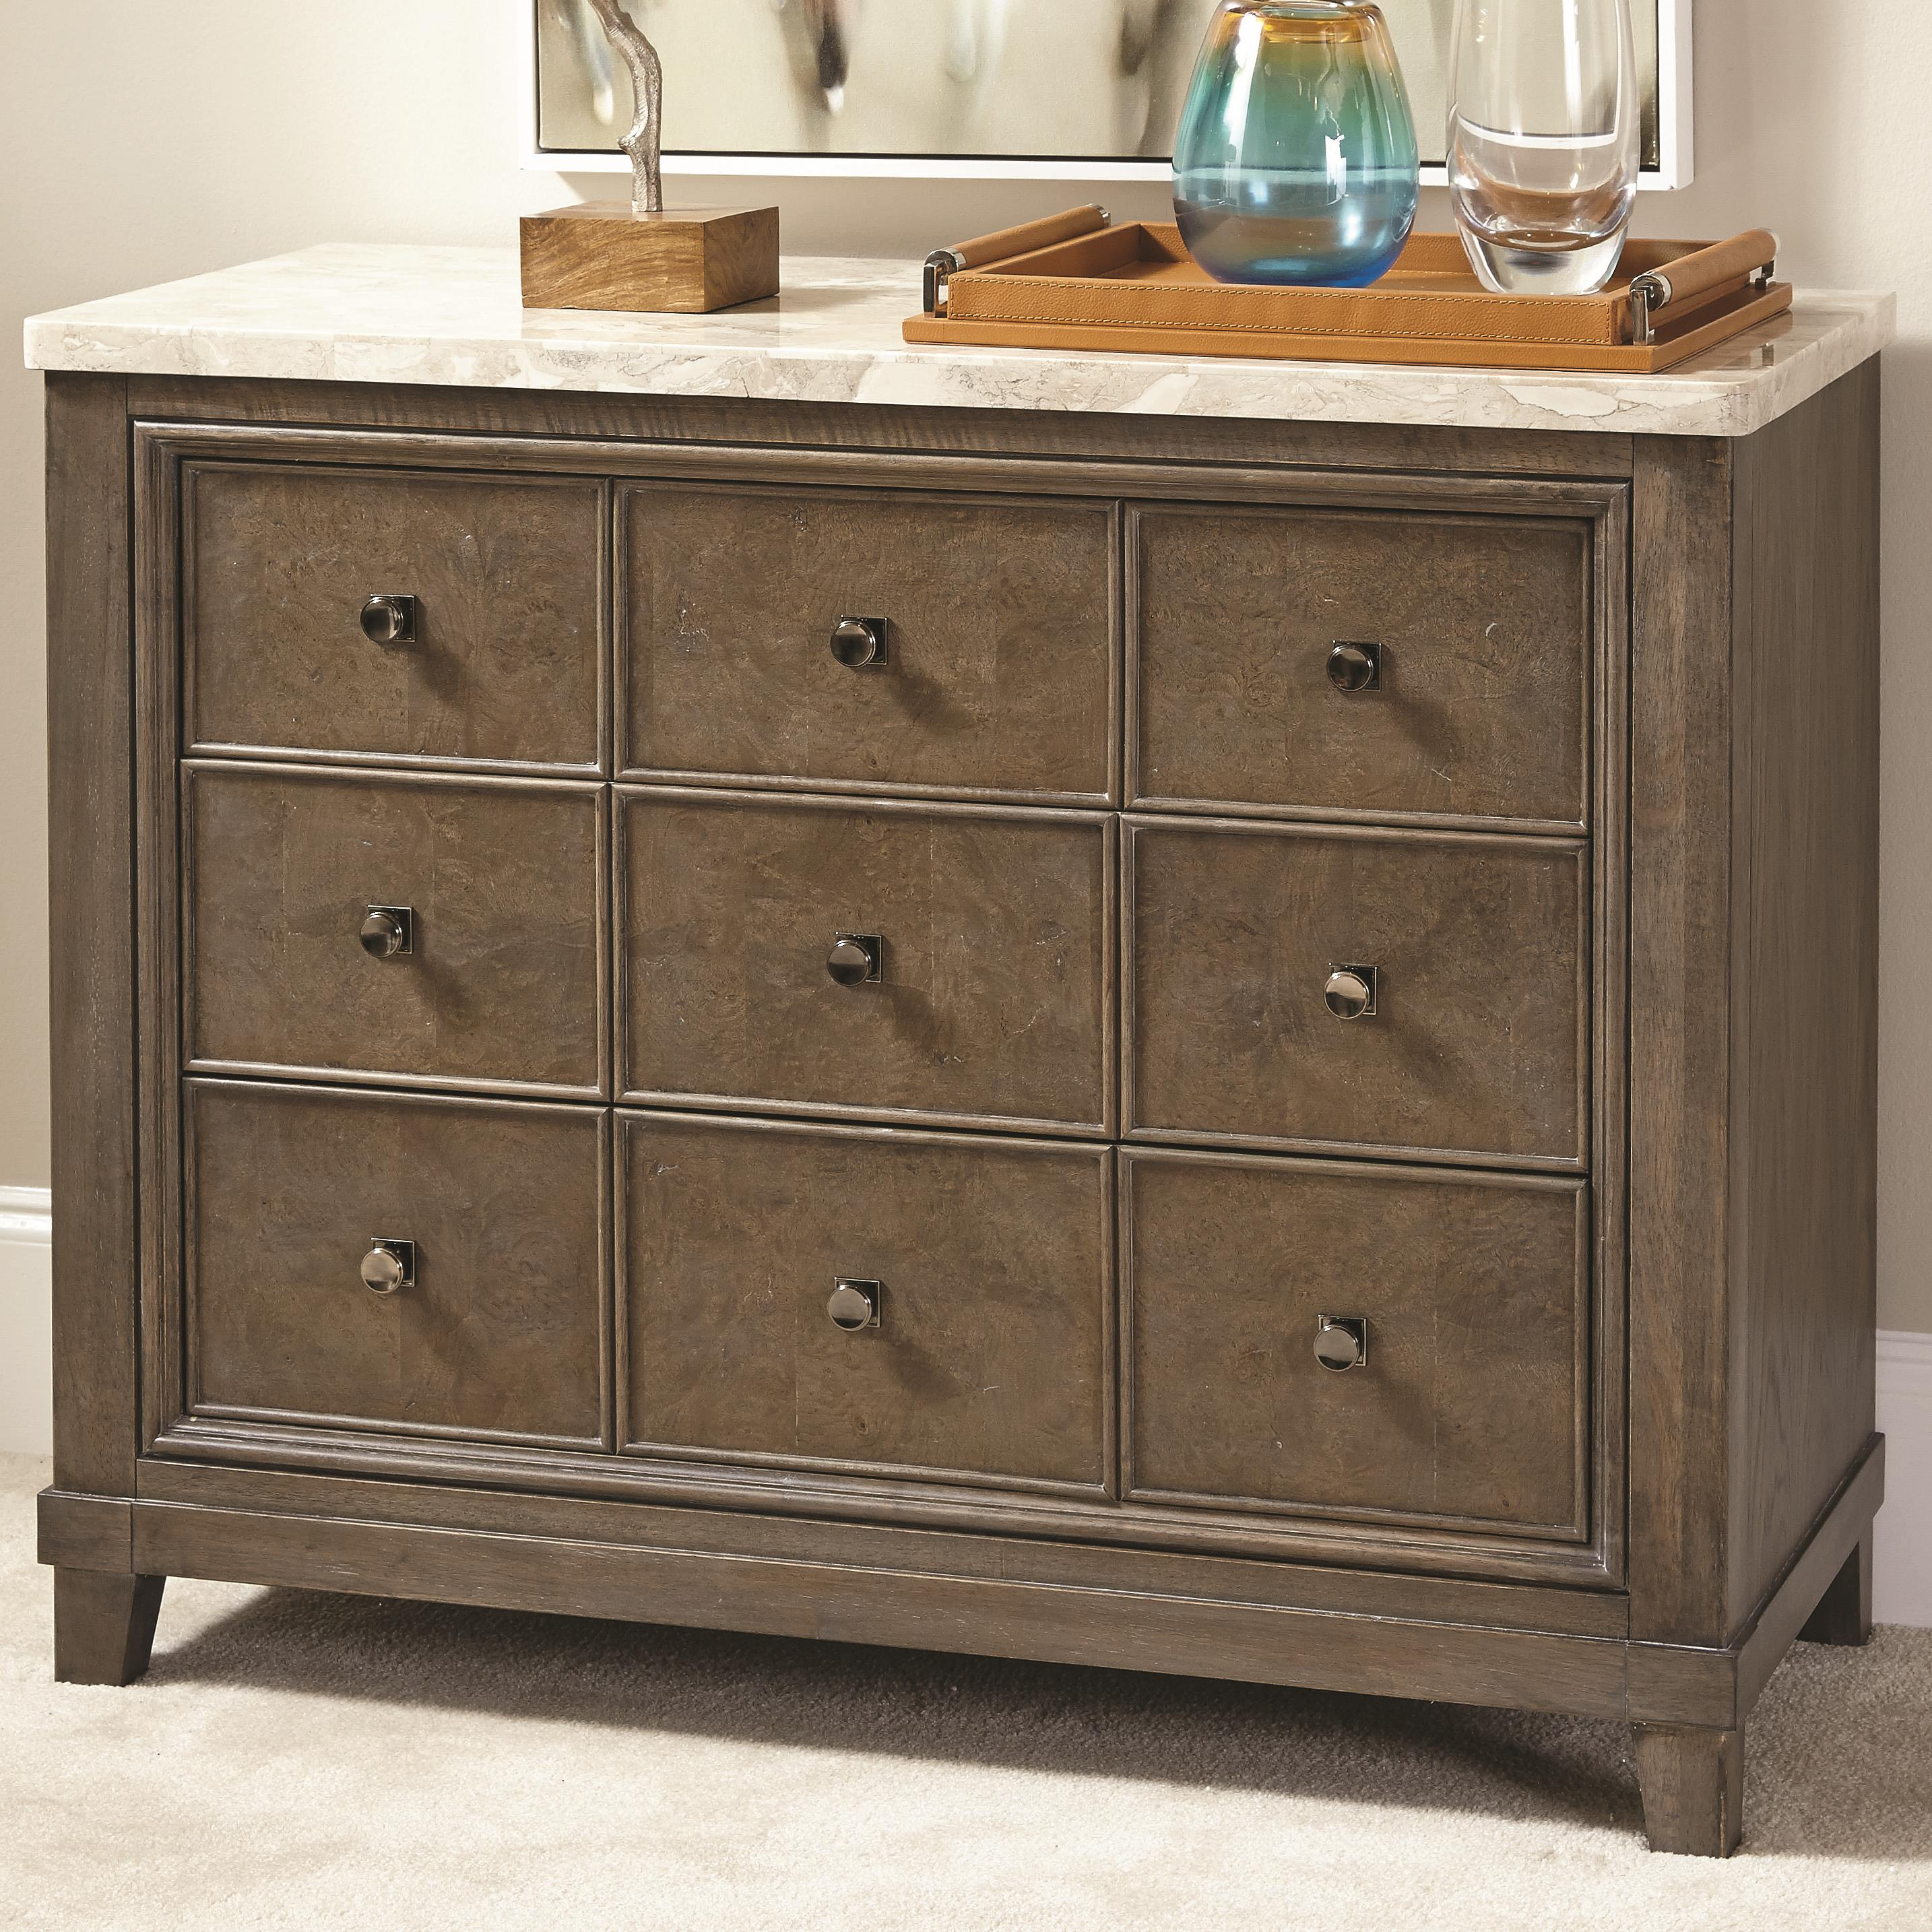 American Drew Park Studio Hall Chest - Item Number: 488-945